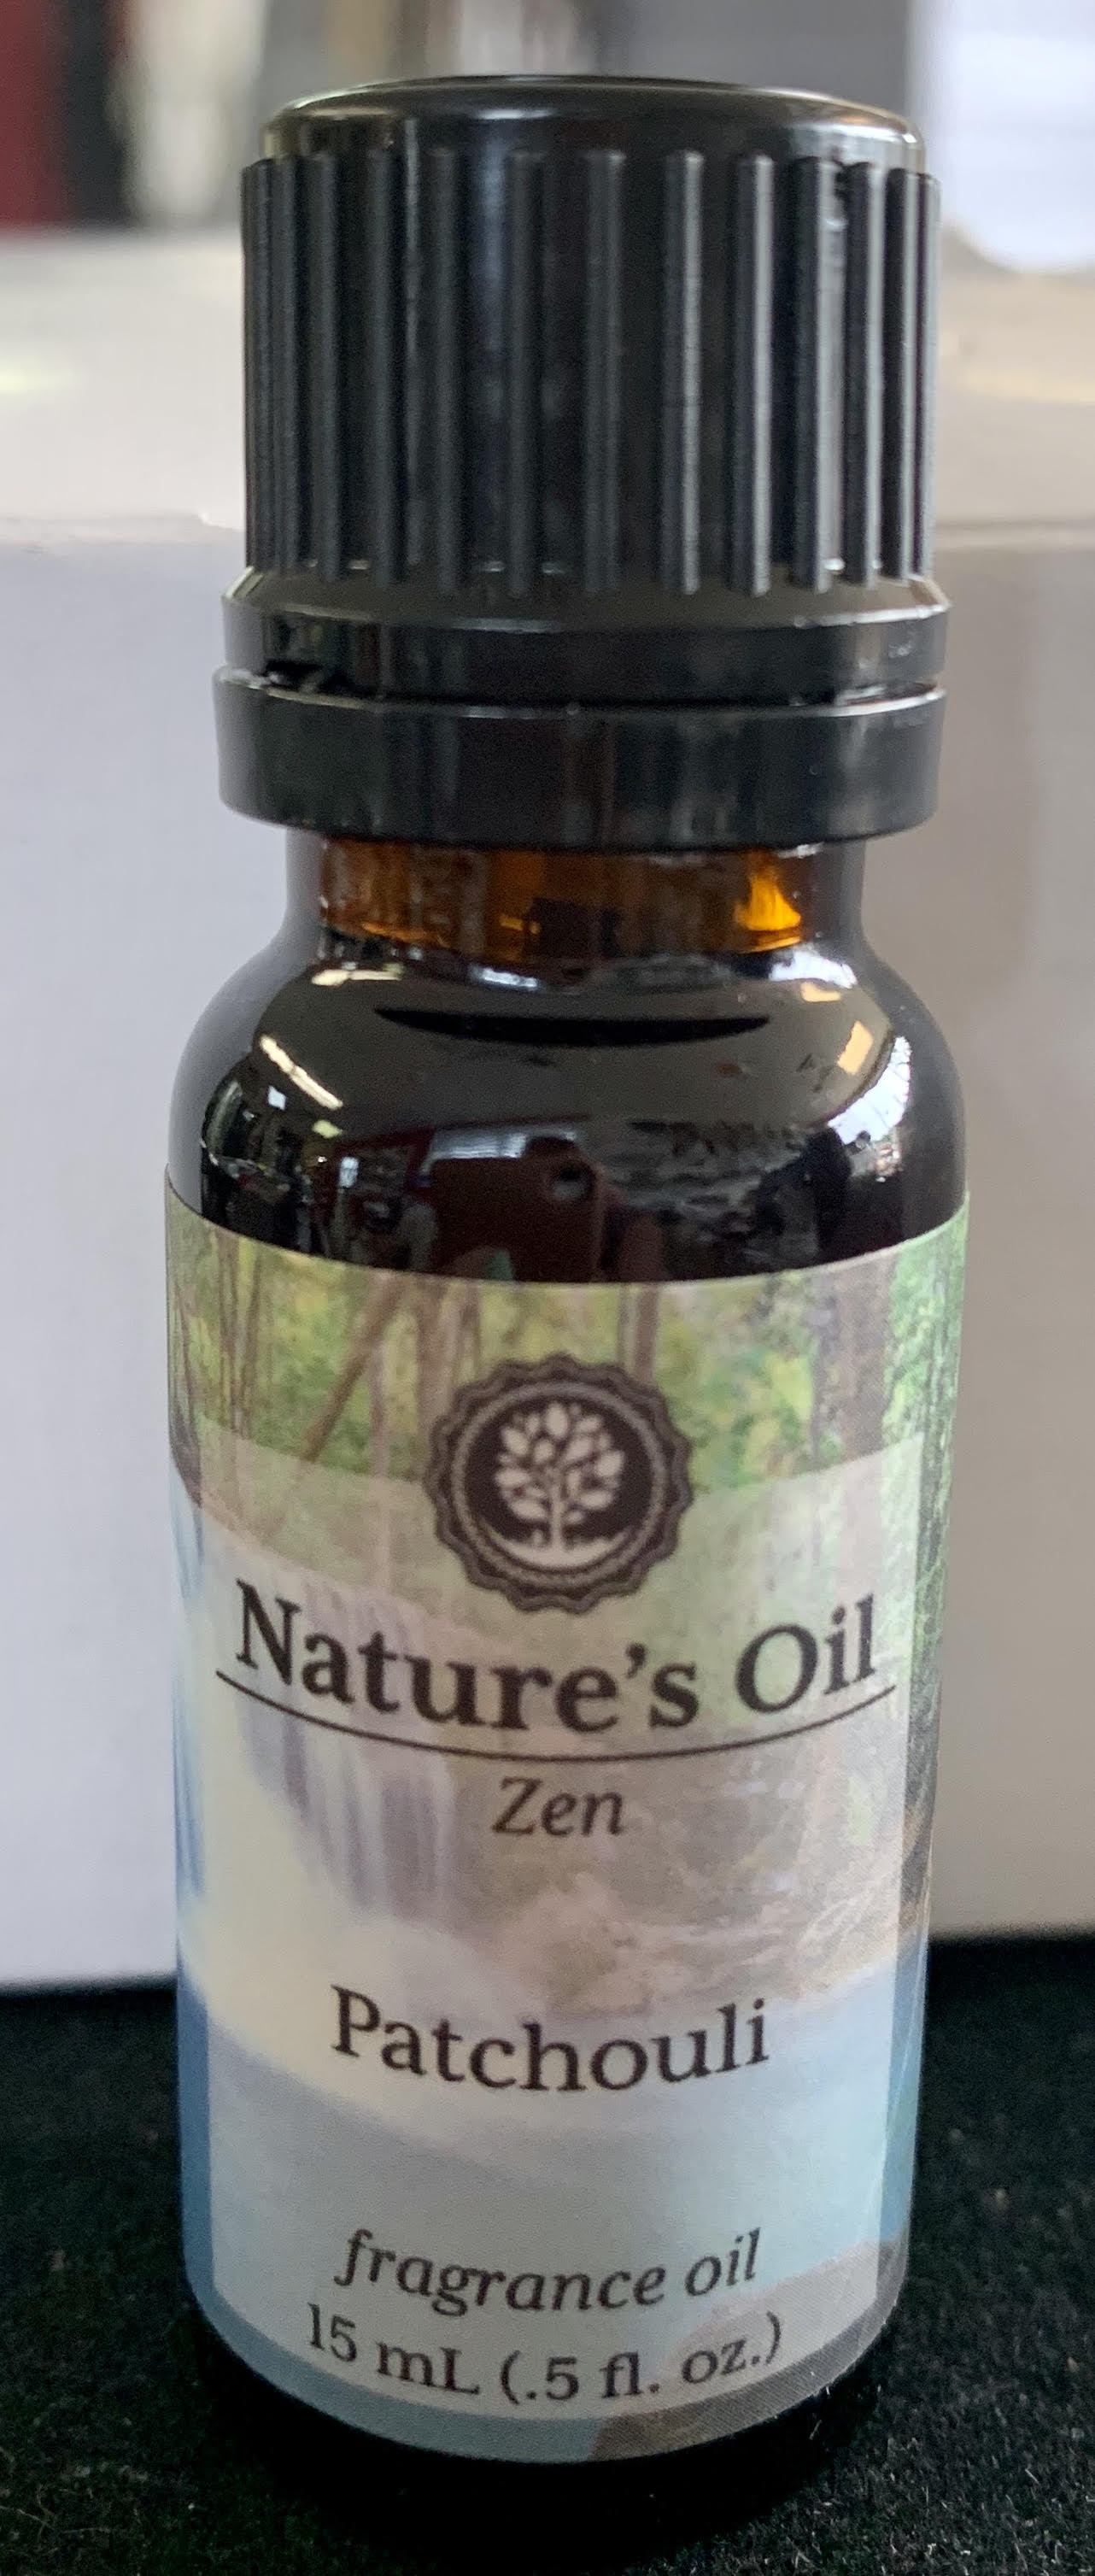 Patchouli Fragrance Oil by Nature's Oil